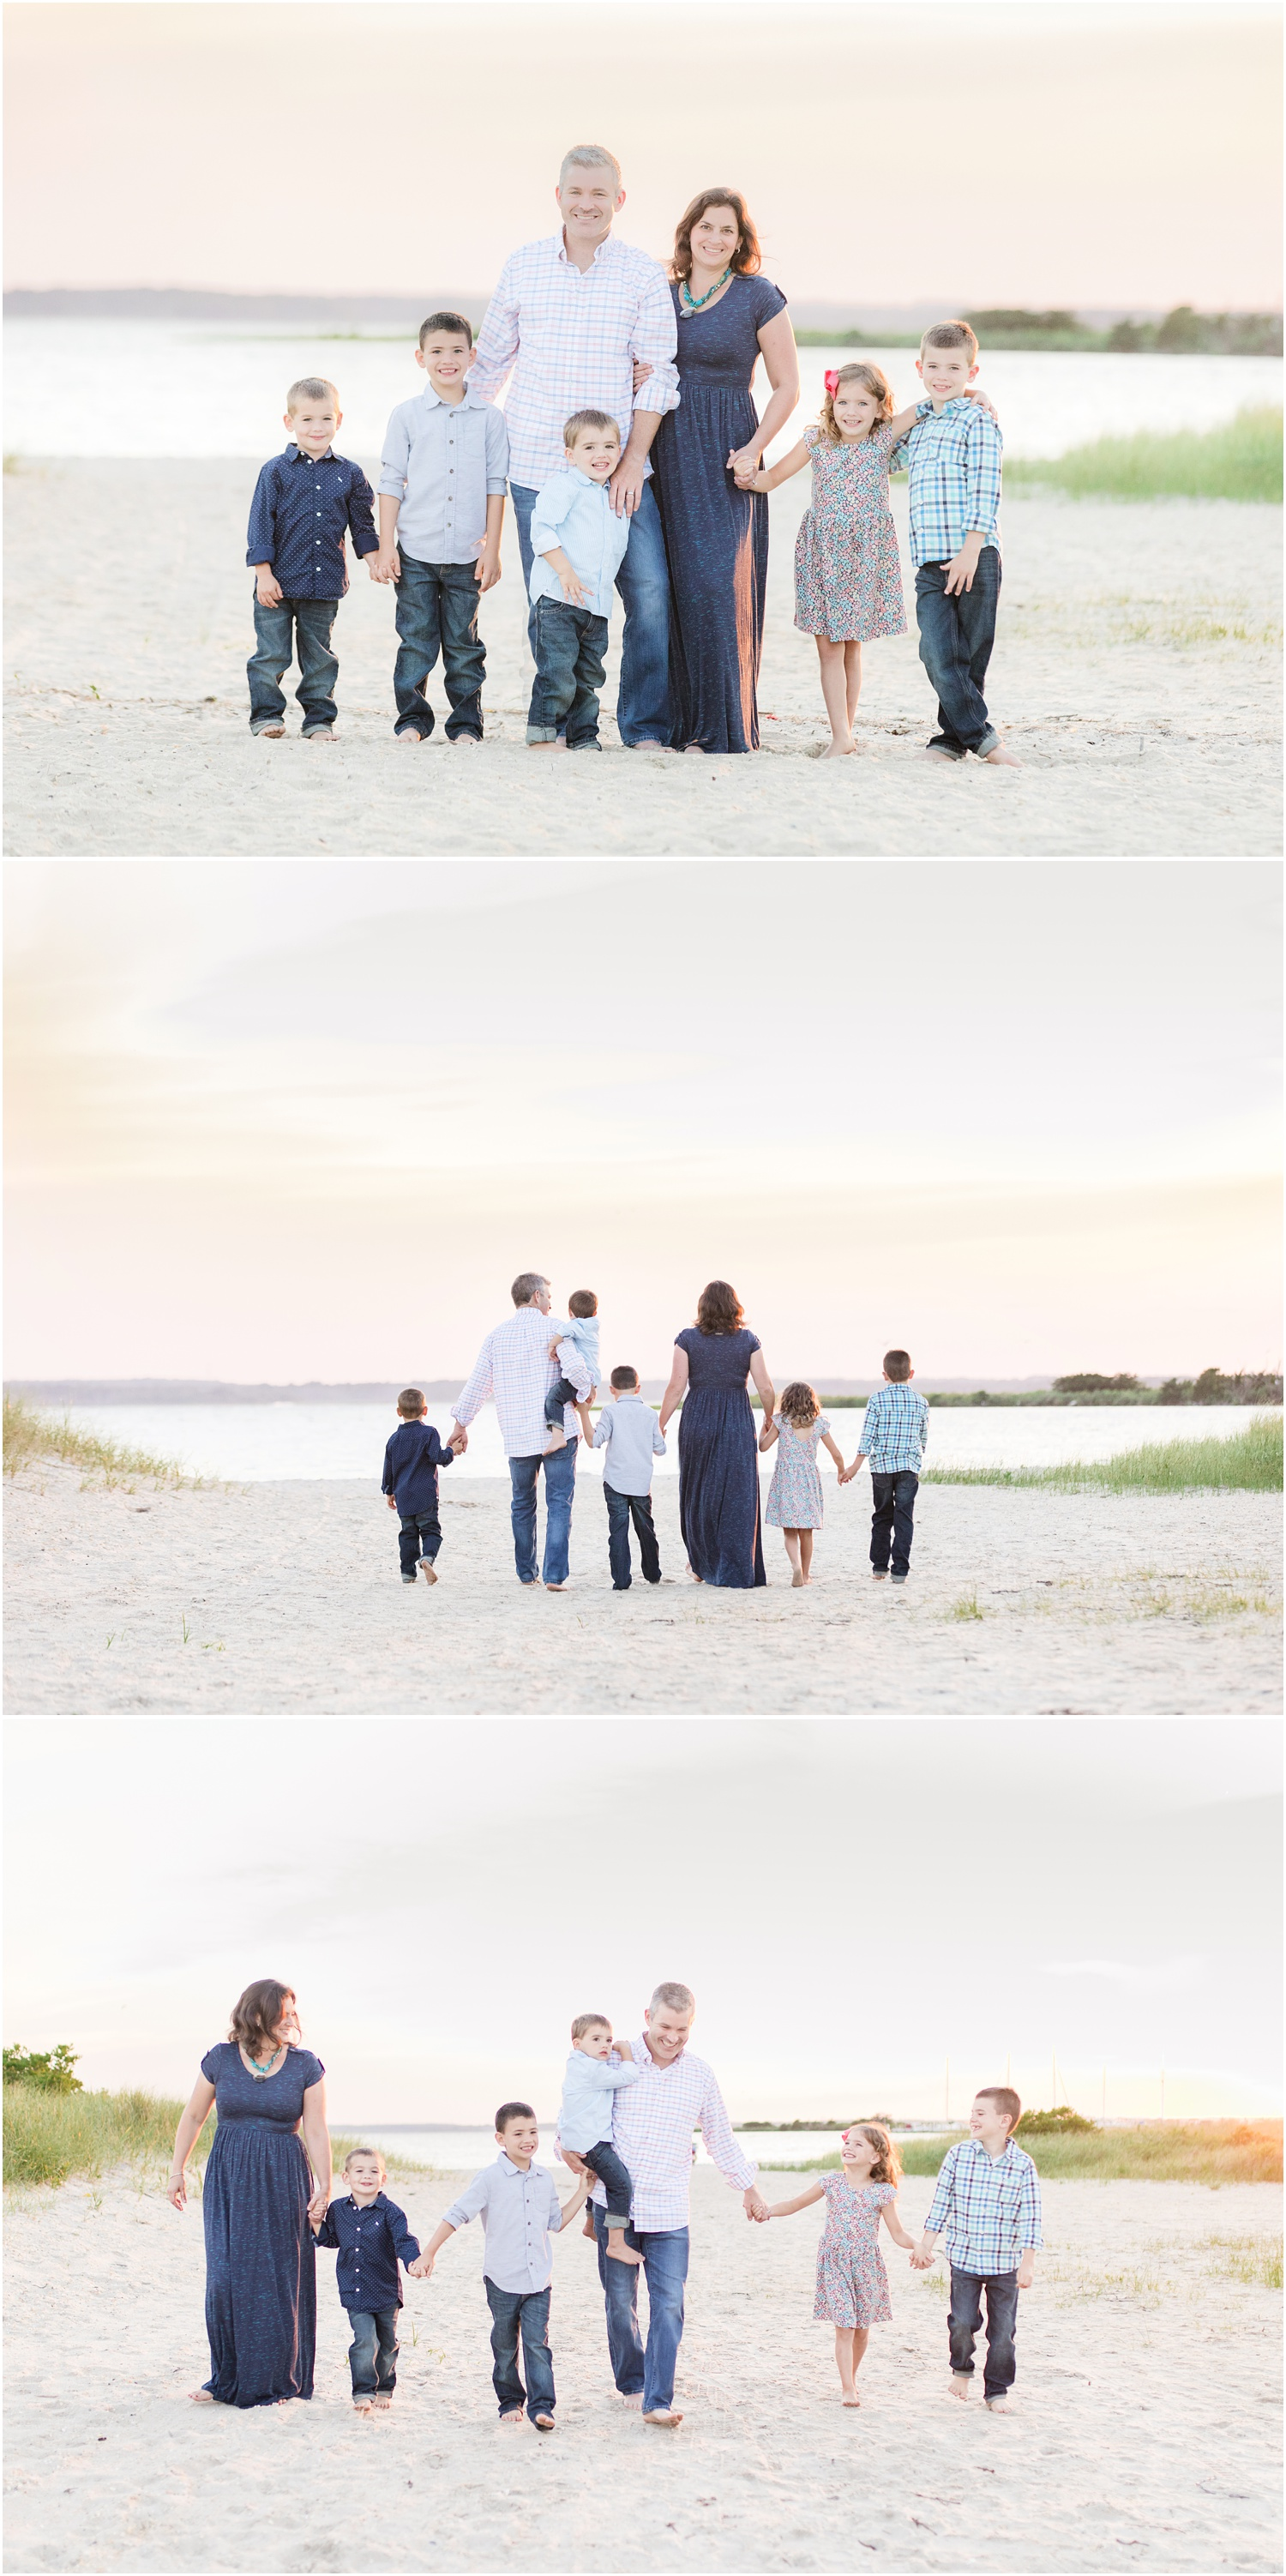 Photos of family of 7 in soft colors at the Barnegat Bay in Lavallette, NJ.